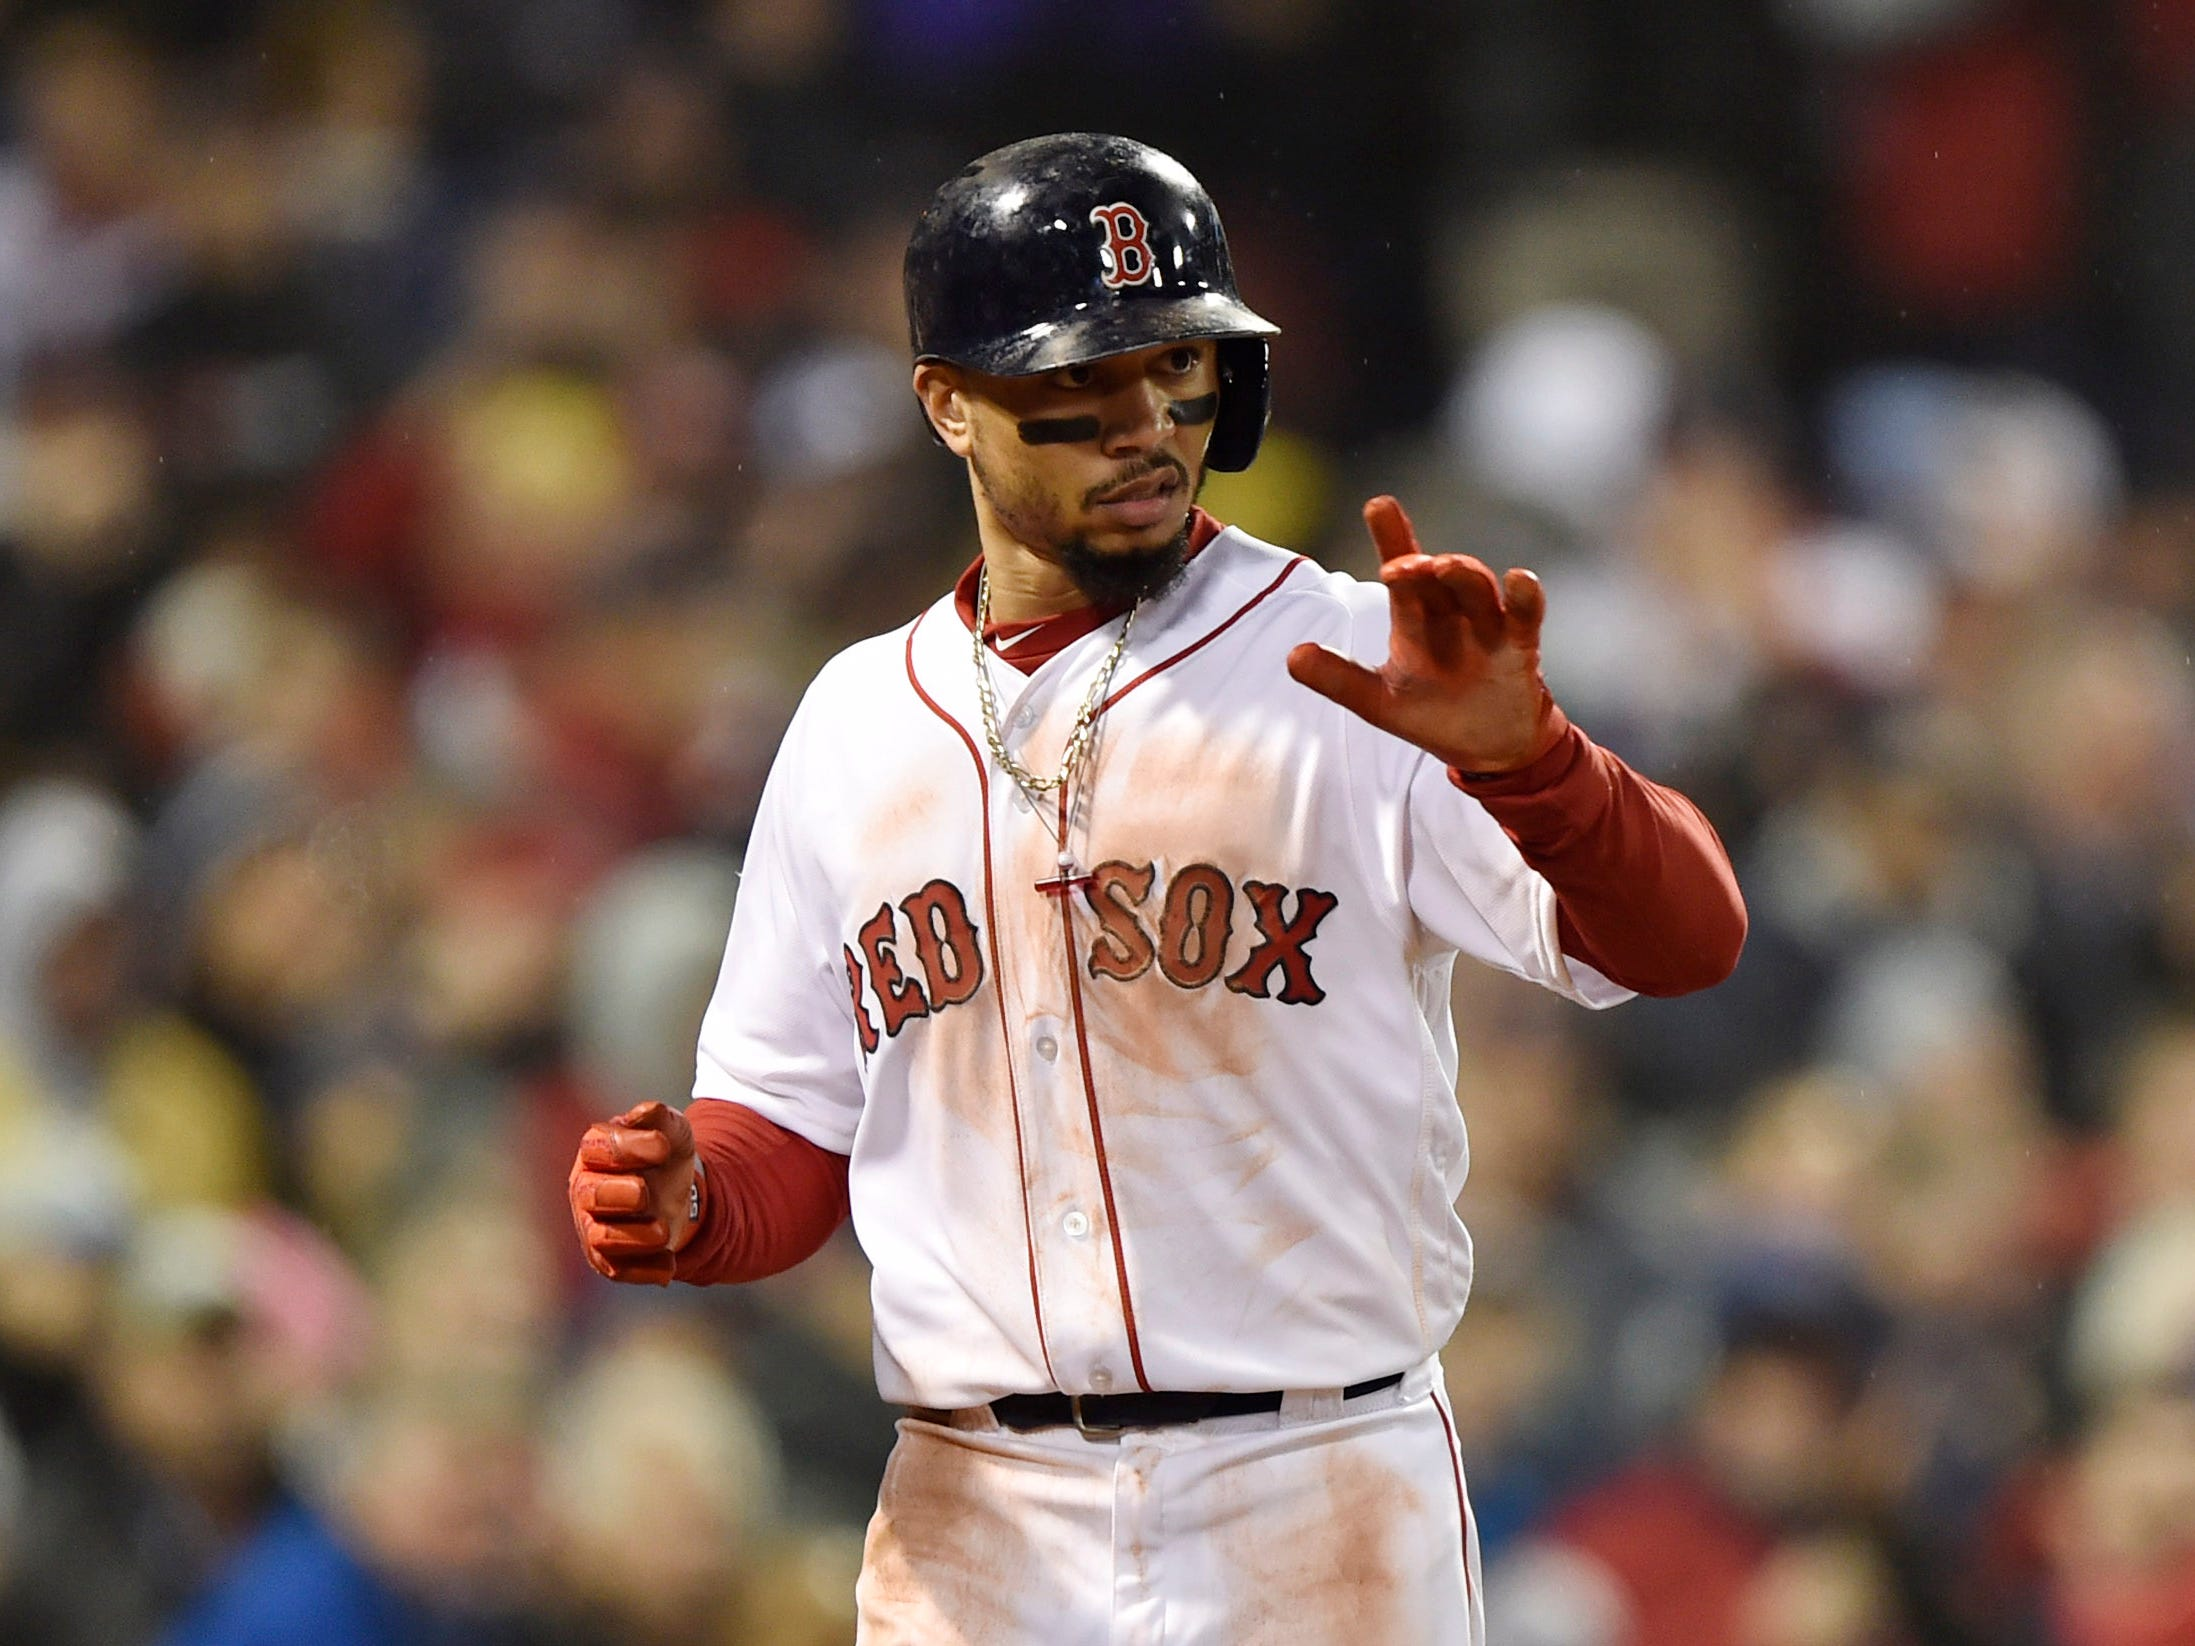 2. Mookie Betts, Boston Red Sox outfielder.